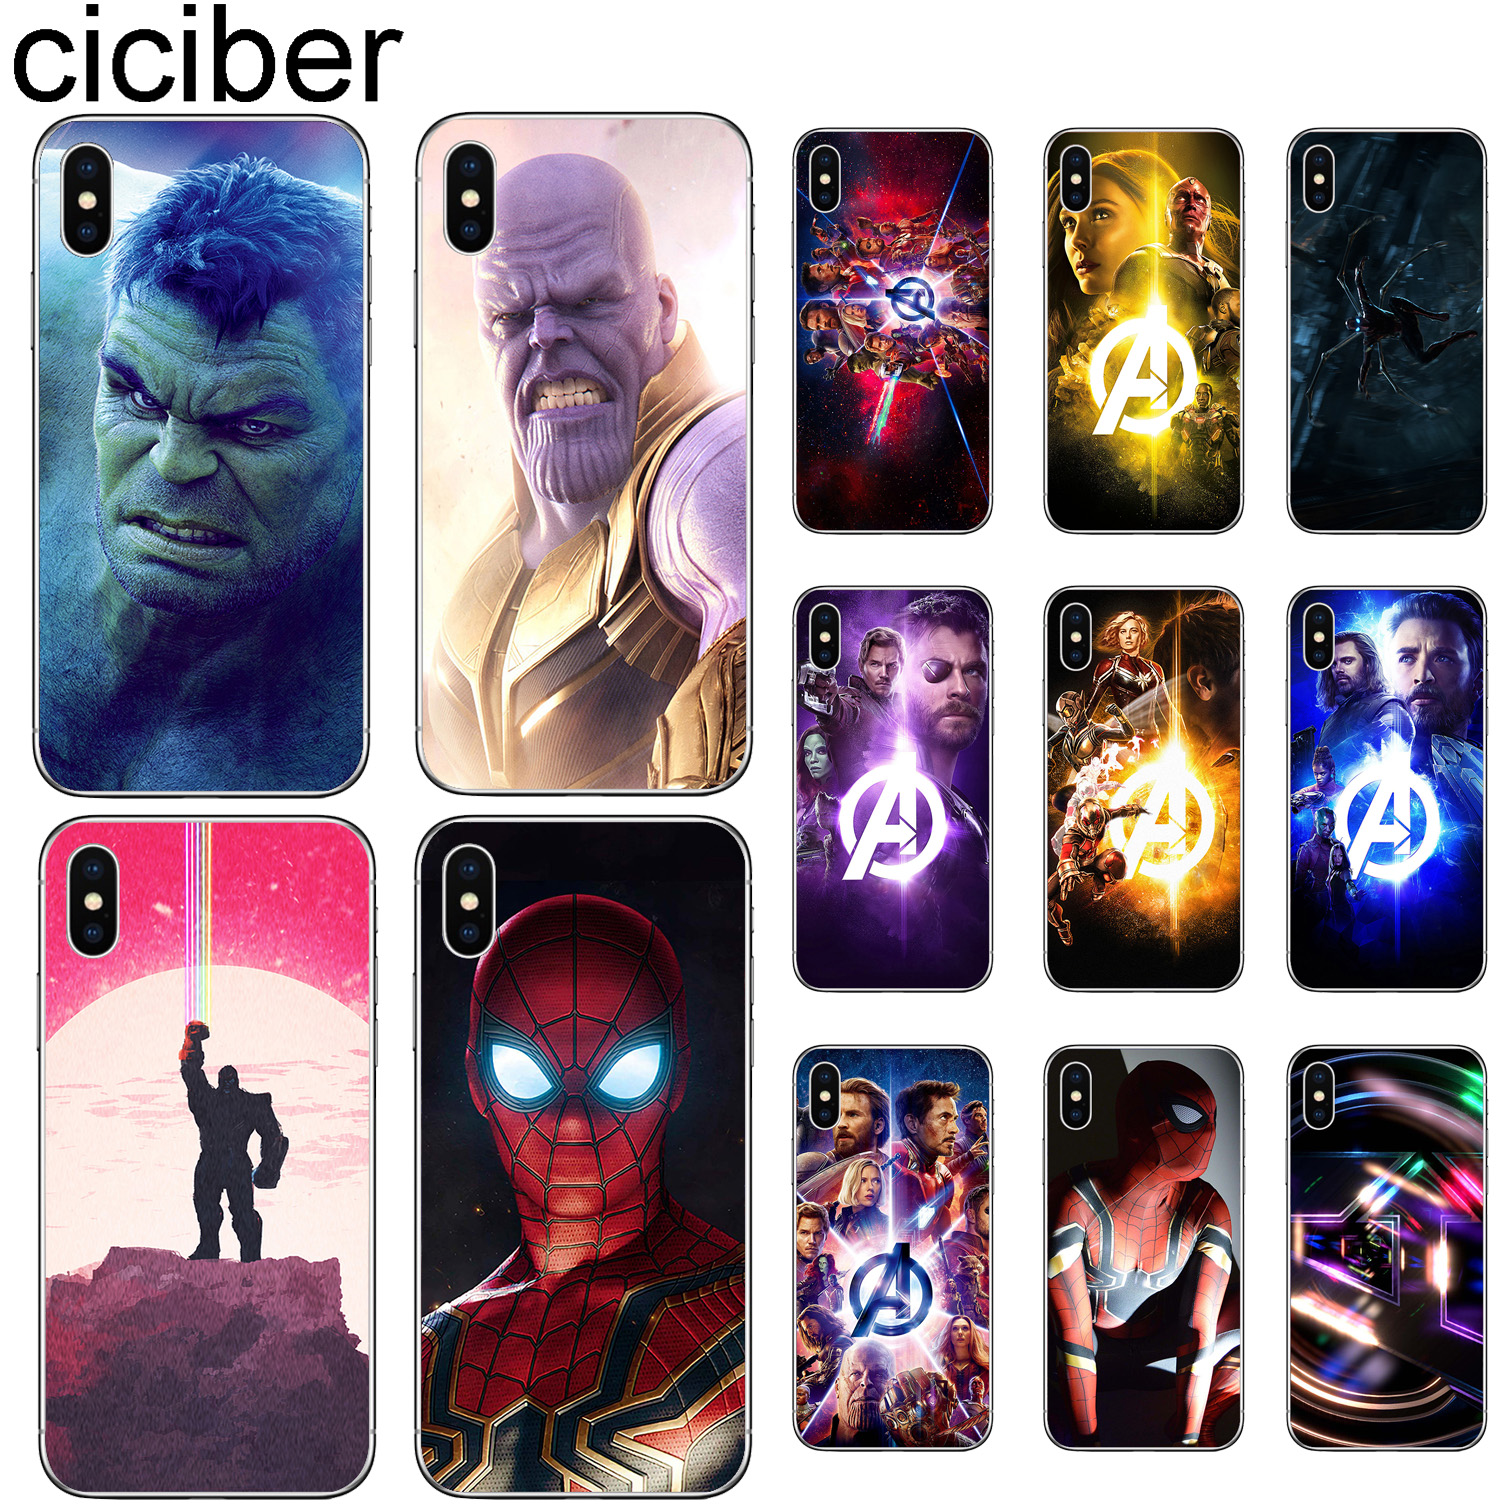 a58c30a3f1 ciciber For Iphone 7 8 6 6S Plus 5S SE X XR XS MAX Clear Soft Silicone TPU Cover  Phone Cases DC Marvel The Avengers Fundas Coque